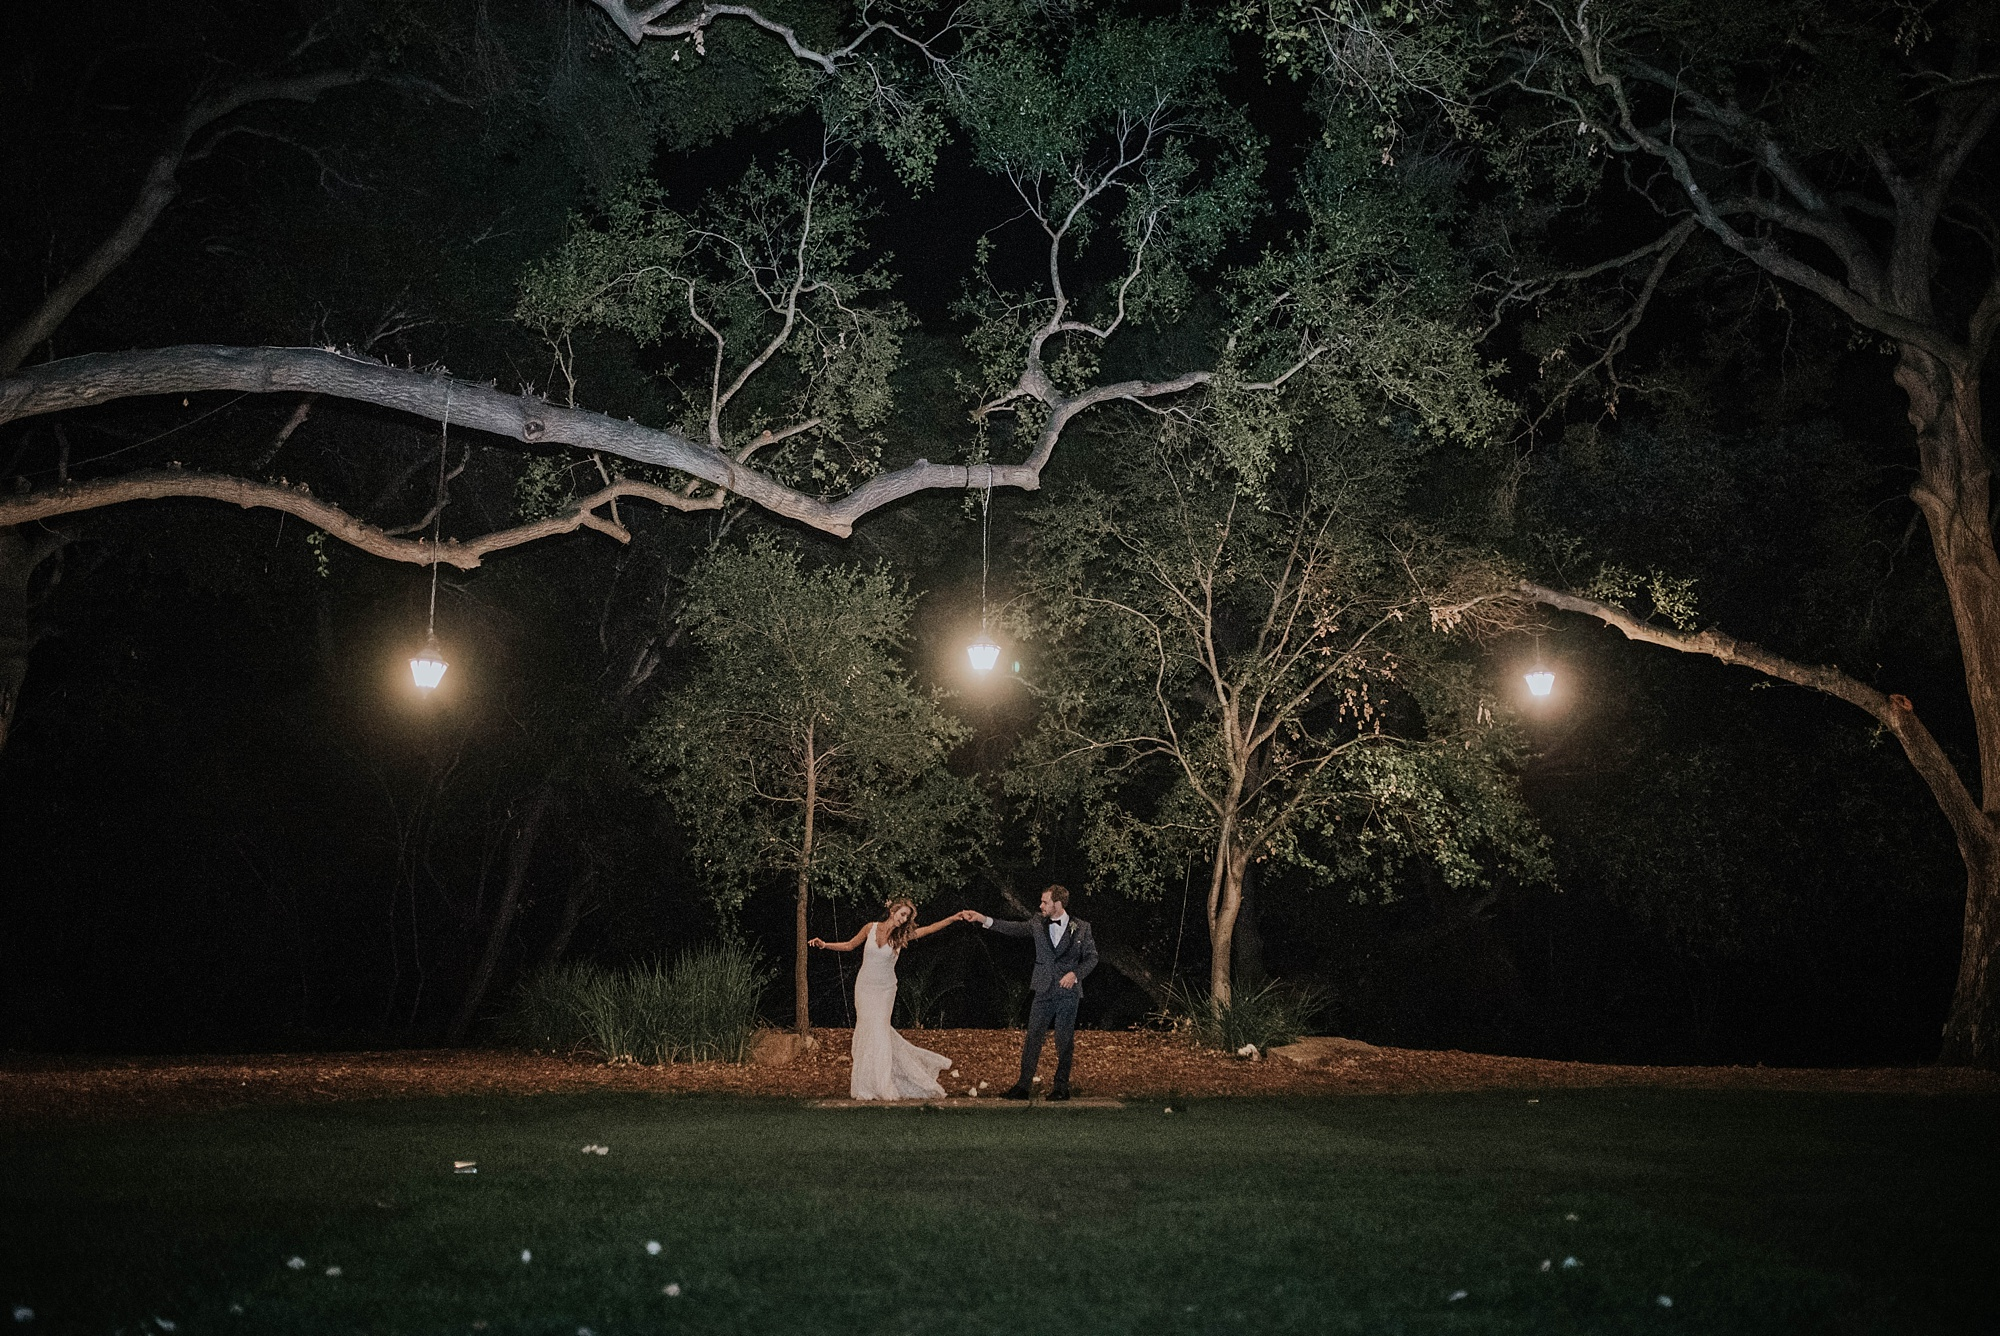 bride and groom dancing under hanging lights in night shot at Temecula creek inn wedding